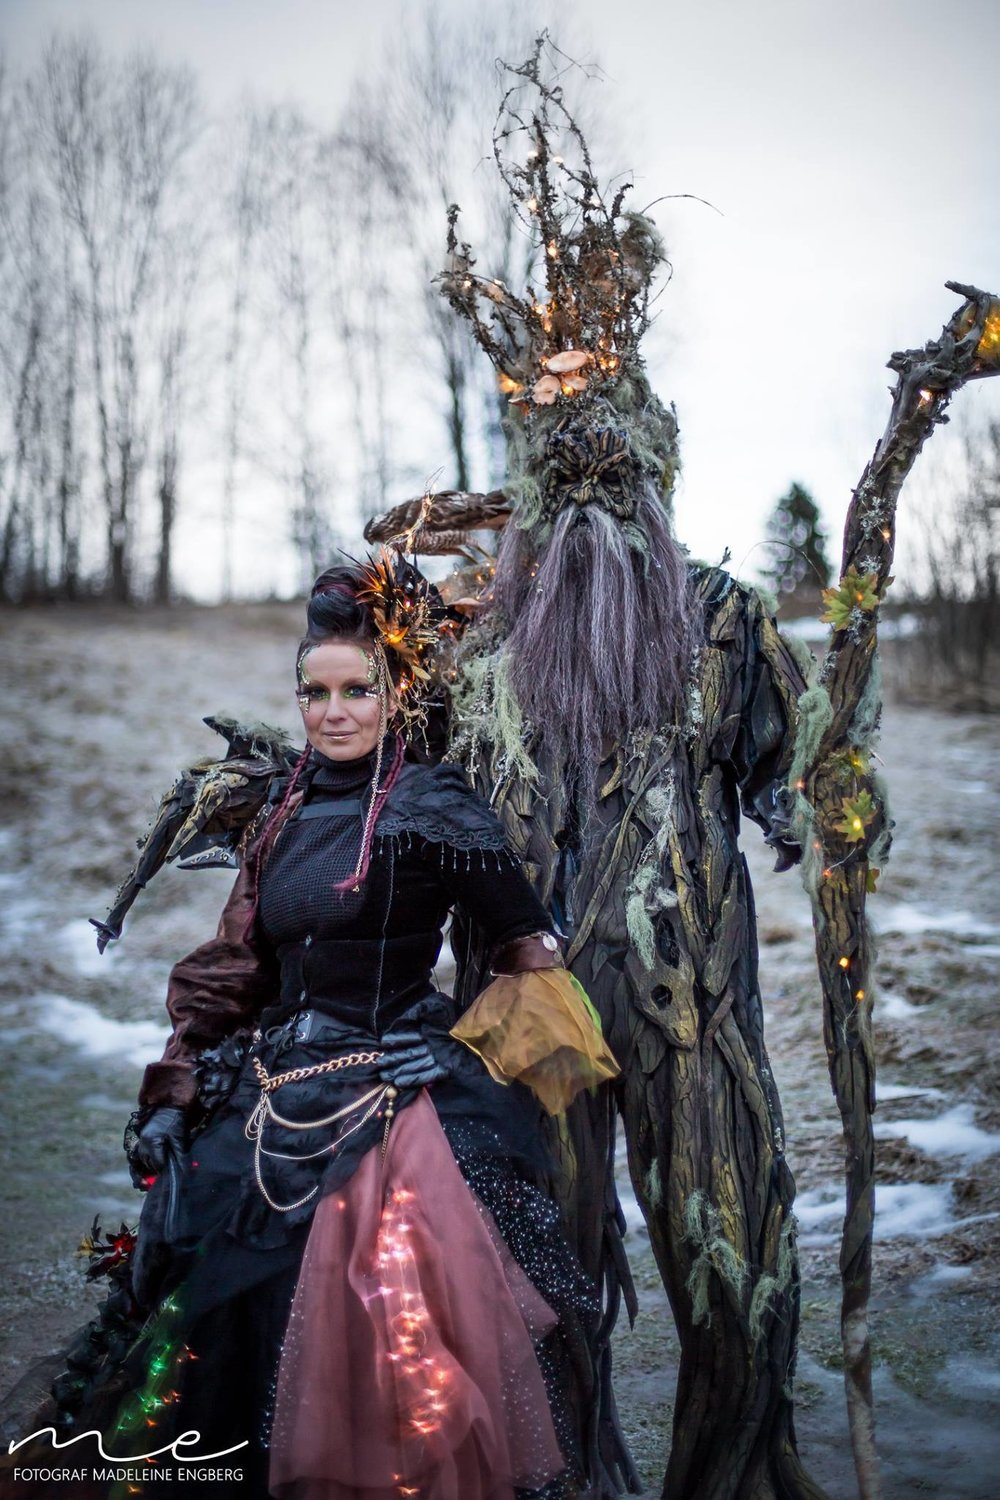 Petra Shara Stoor - SFX Artist and head teacher at Helsinglight SFX Makeup Academy with her Ent inspired creation at the winter festival Midvinterglöd in 2016.